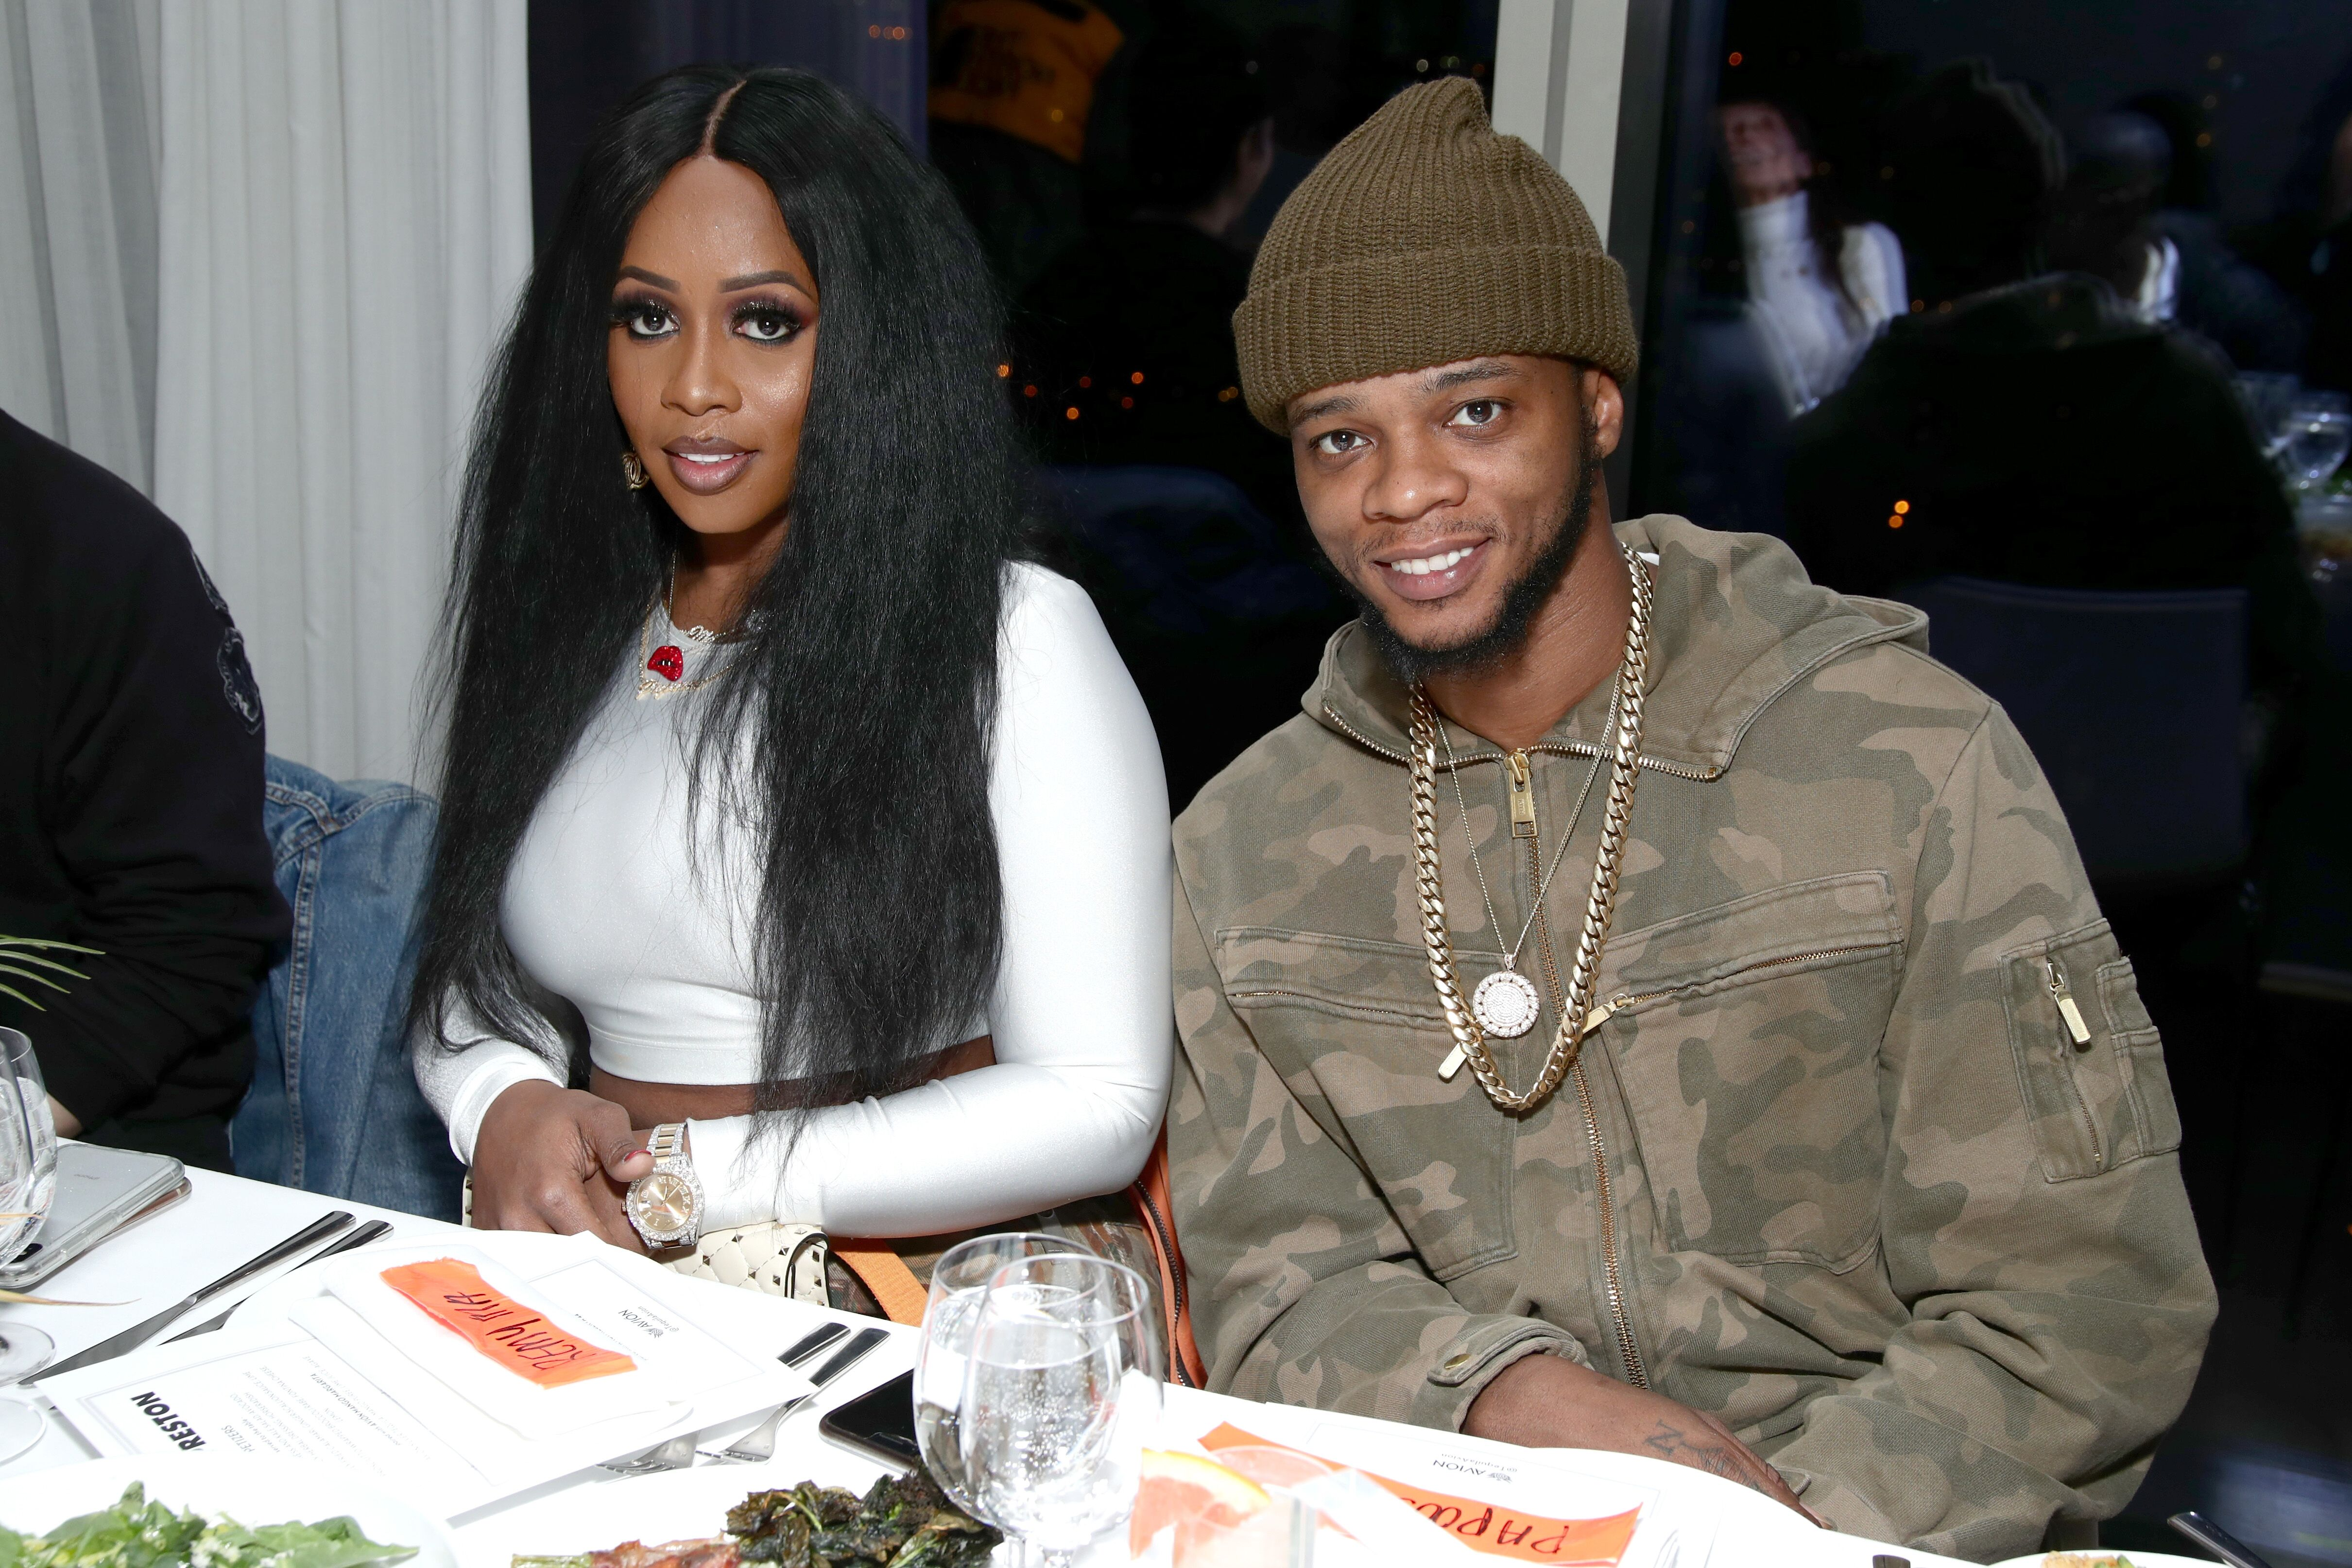 Remy Ma and Papoose at a dinner celebration | Source: Getty Images/GlobalImagesUkraine